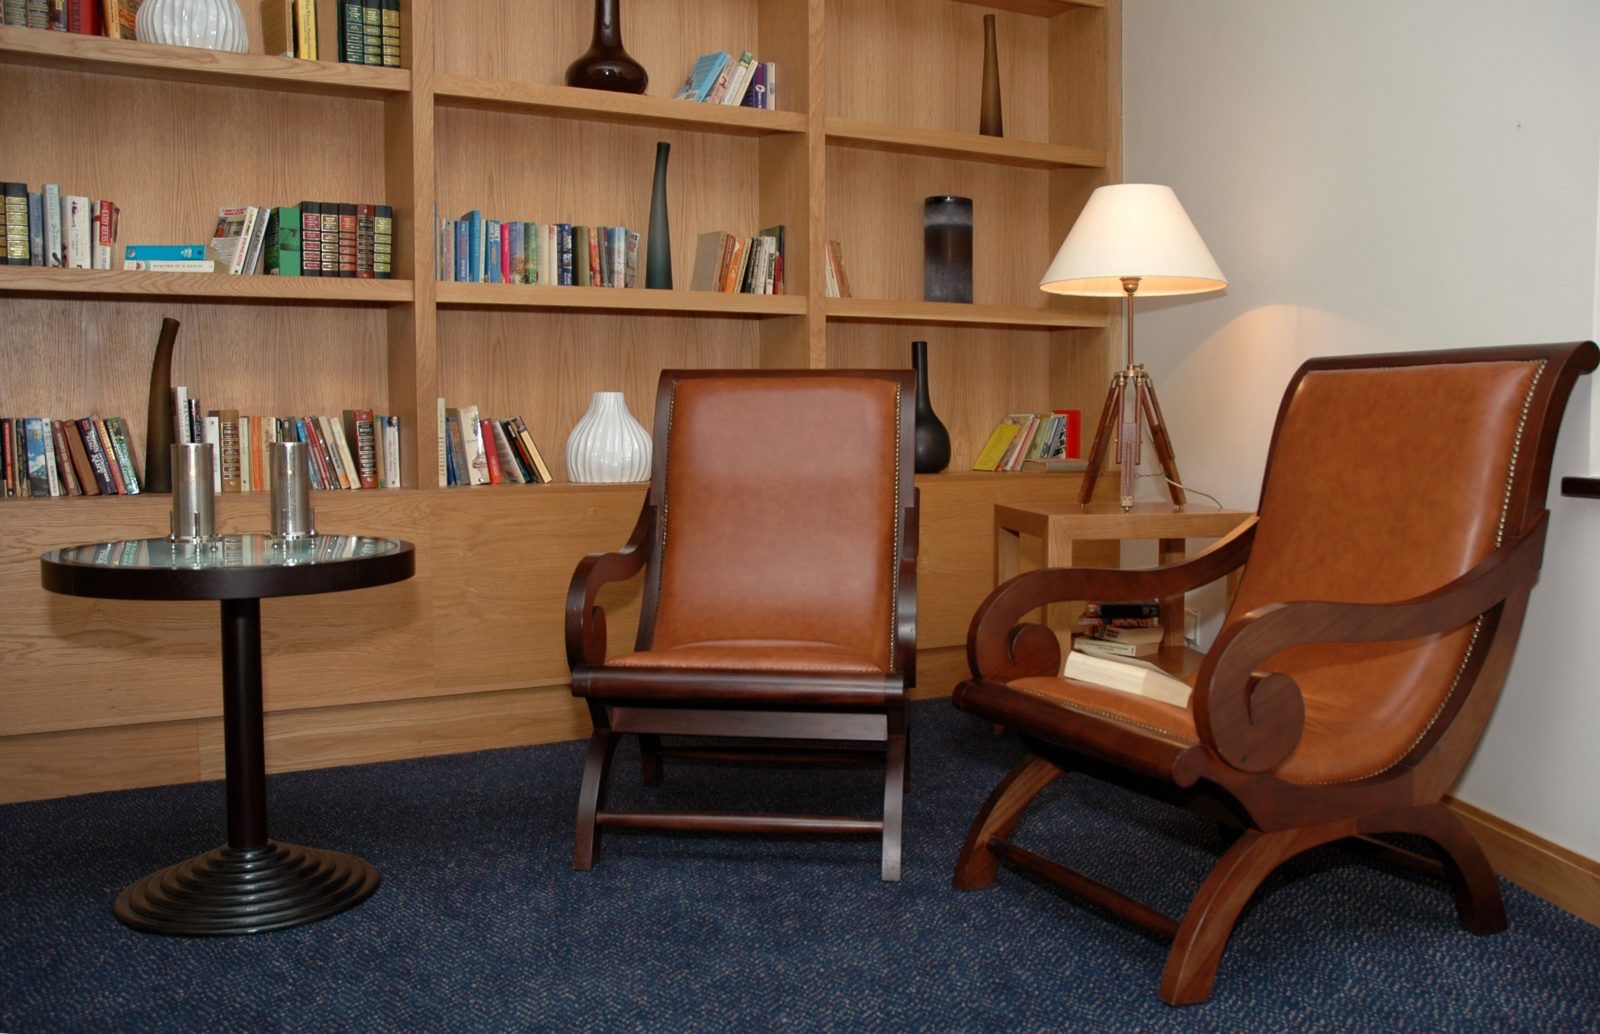 Two chairs in comfortable office setting